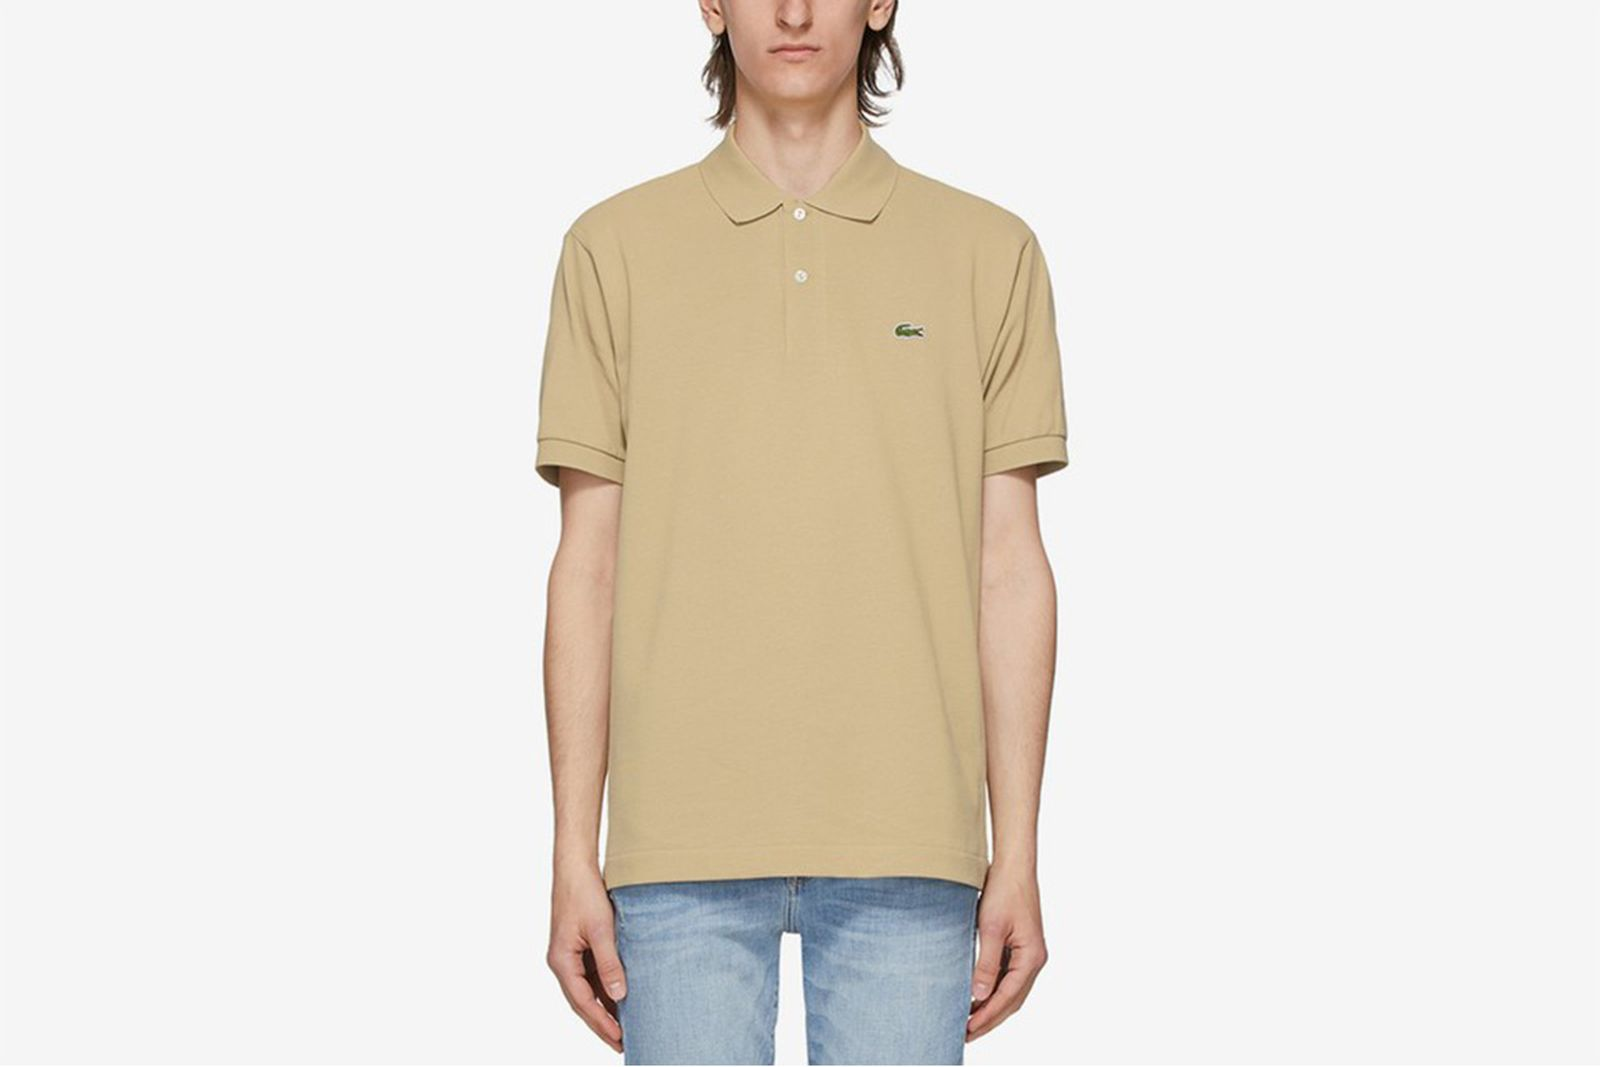 Lacoste polo shirts example